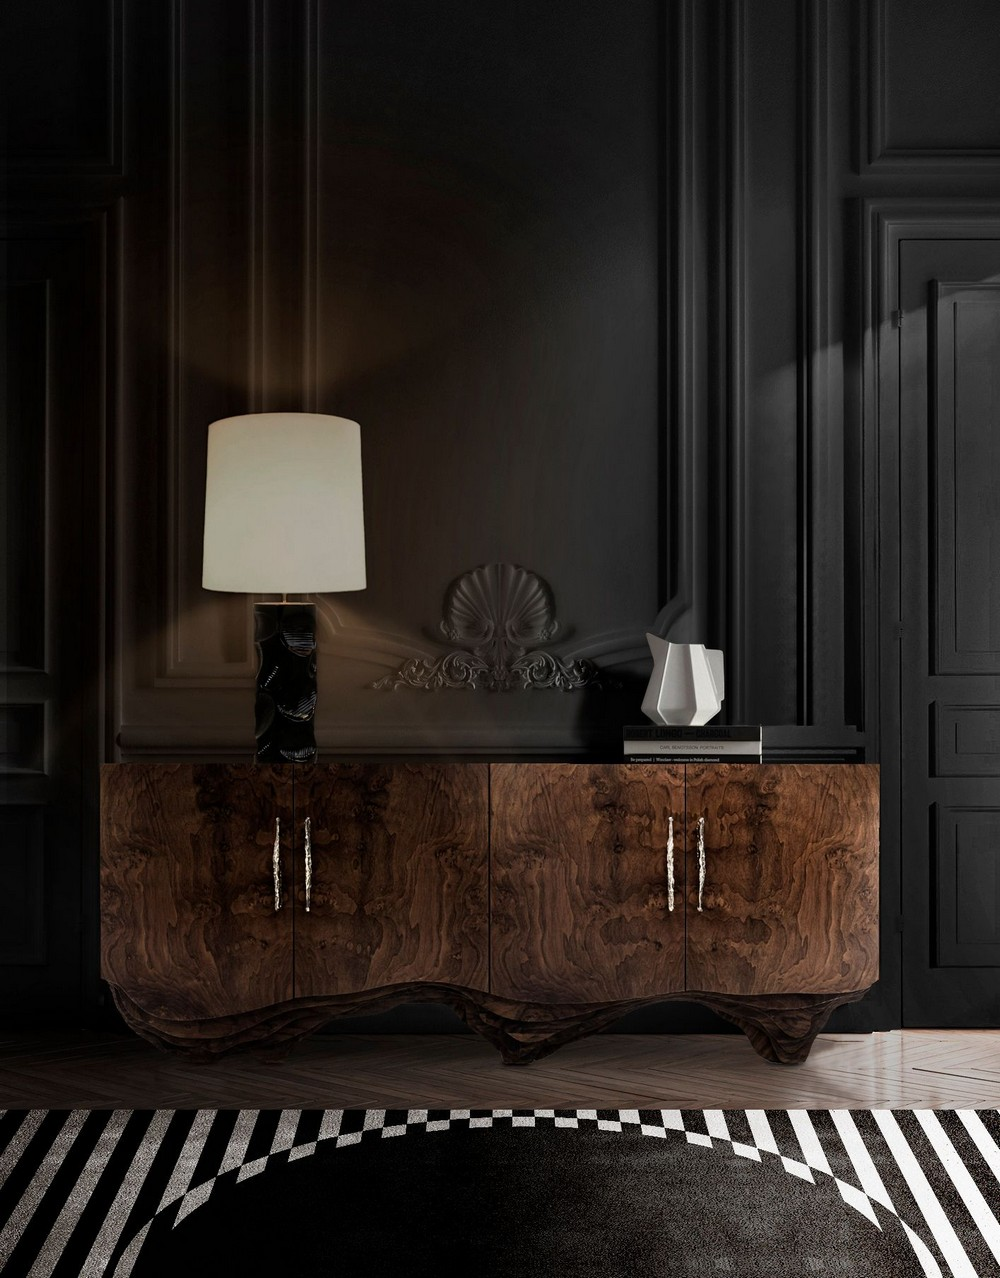 More Than Furniture, A Mood: The Best Sideboard Designs of 2020